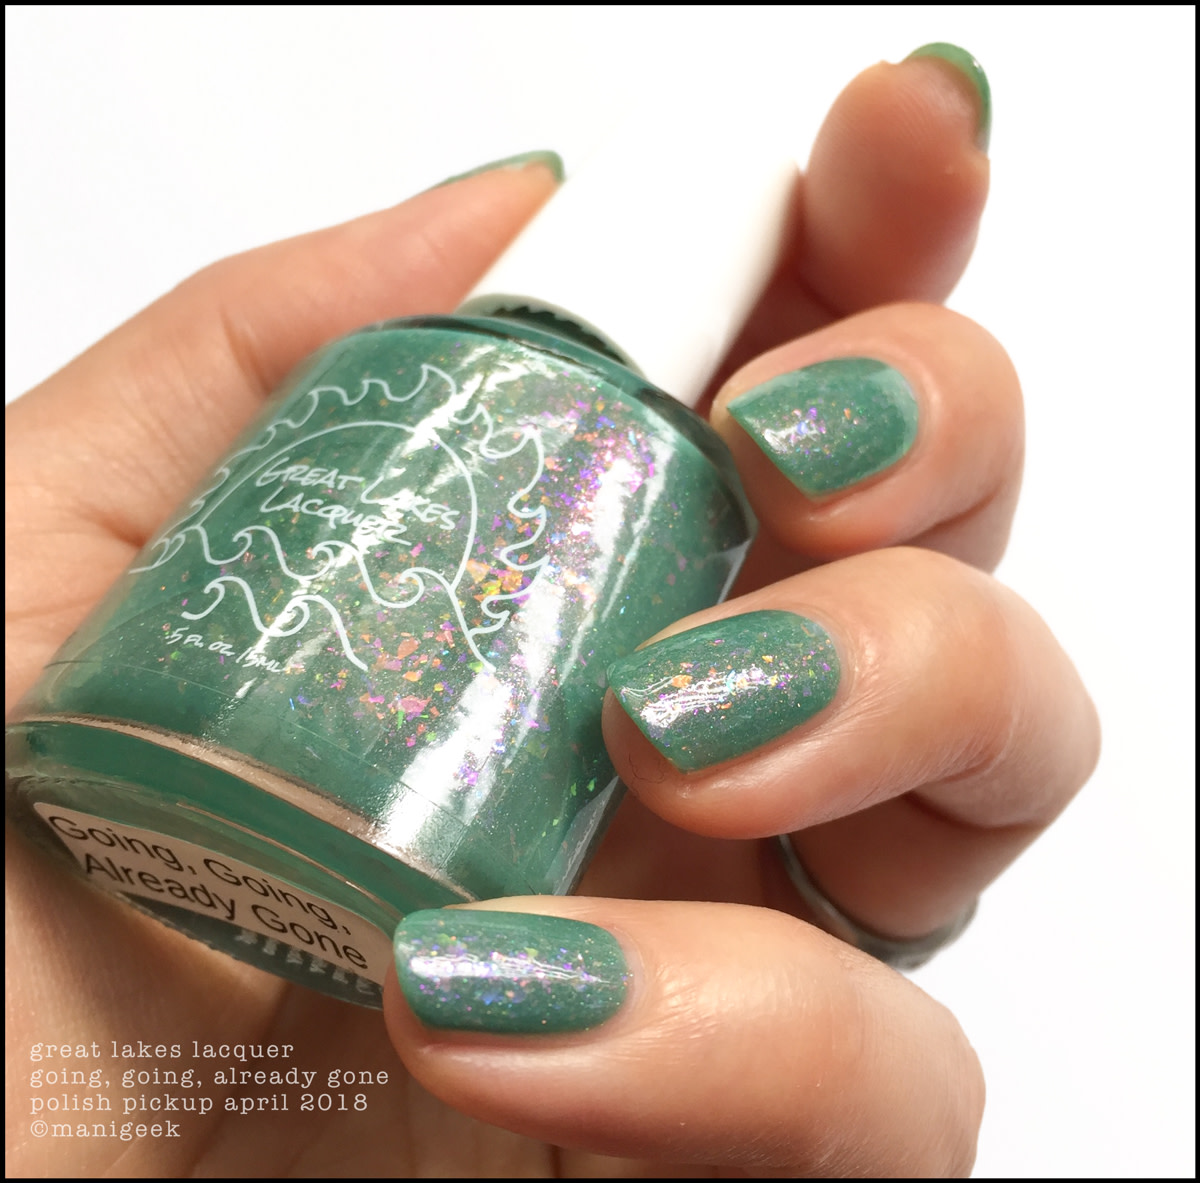 Great Lakes Lacquer Polish Pickup April 2018 Going Going Already Gone _ 2